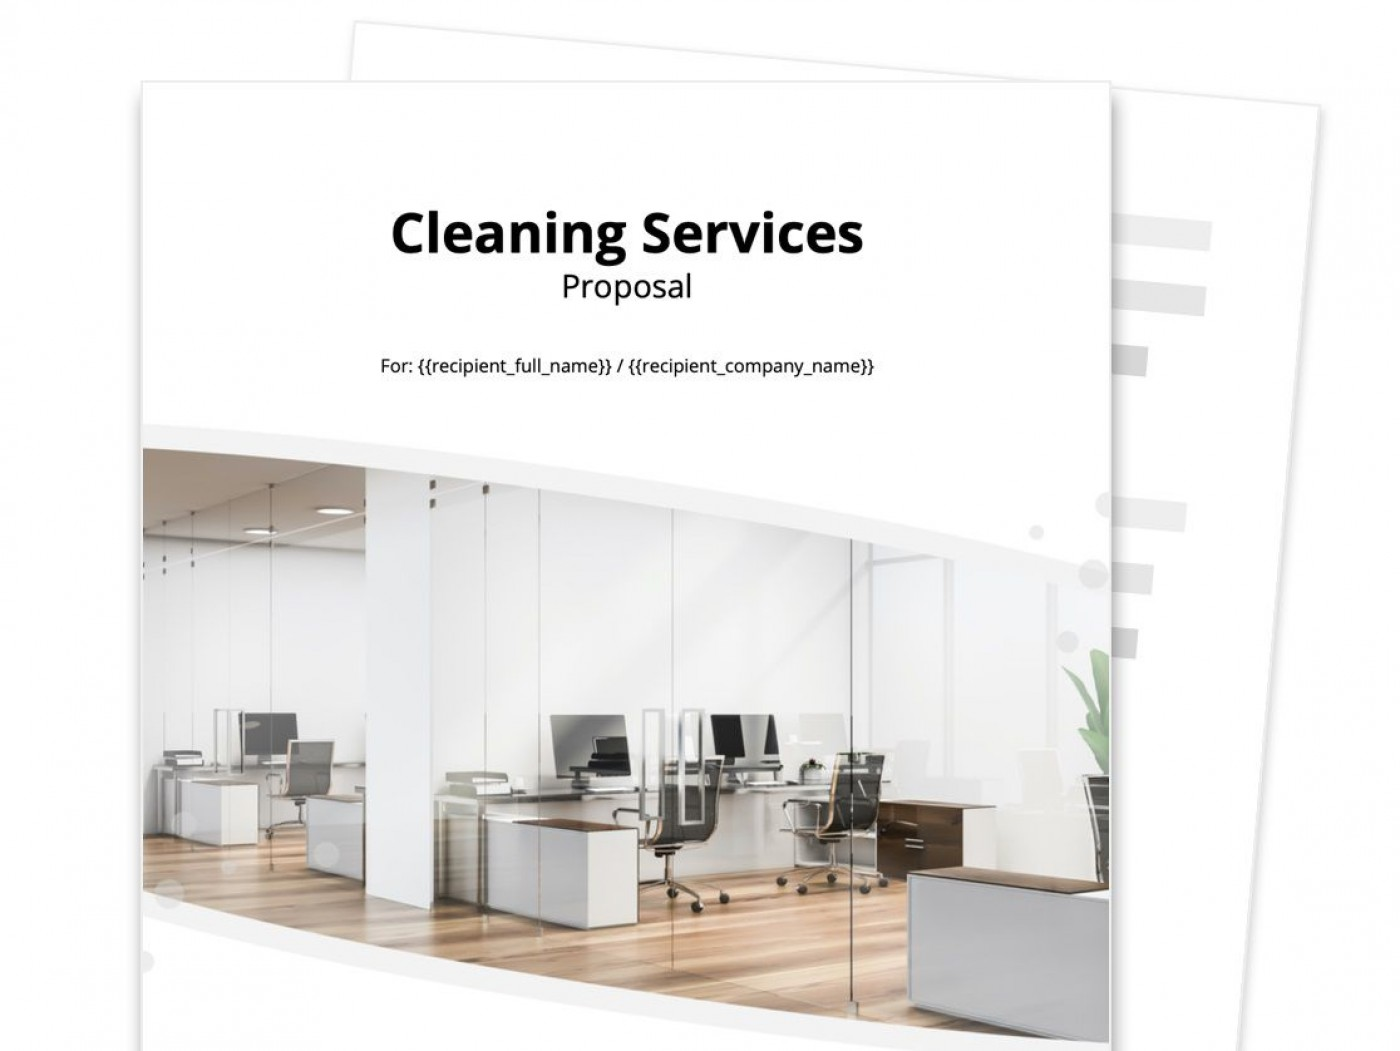 006 Stunning Free Cleaning Proposal Template Image  Doc Office Bid1400